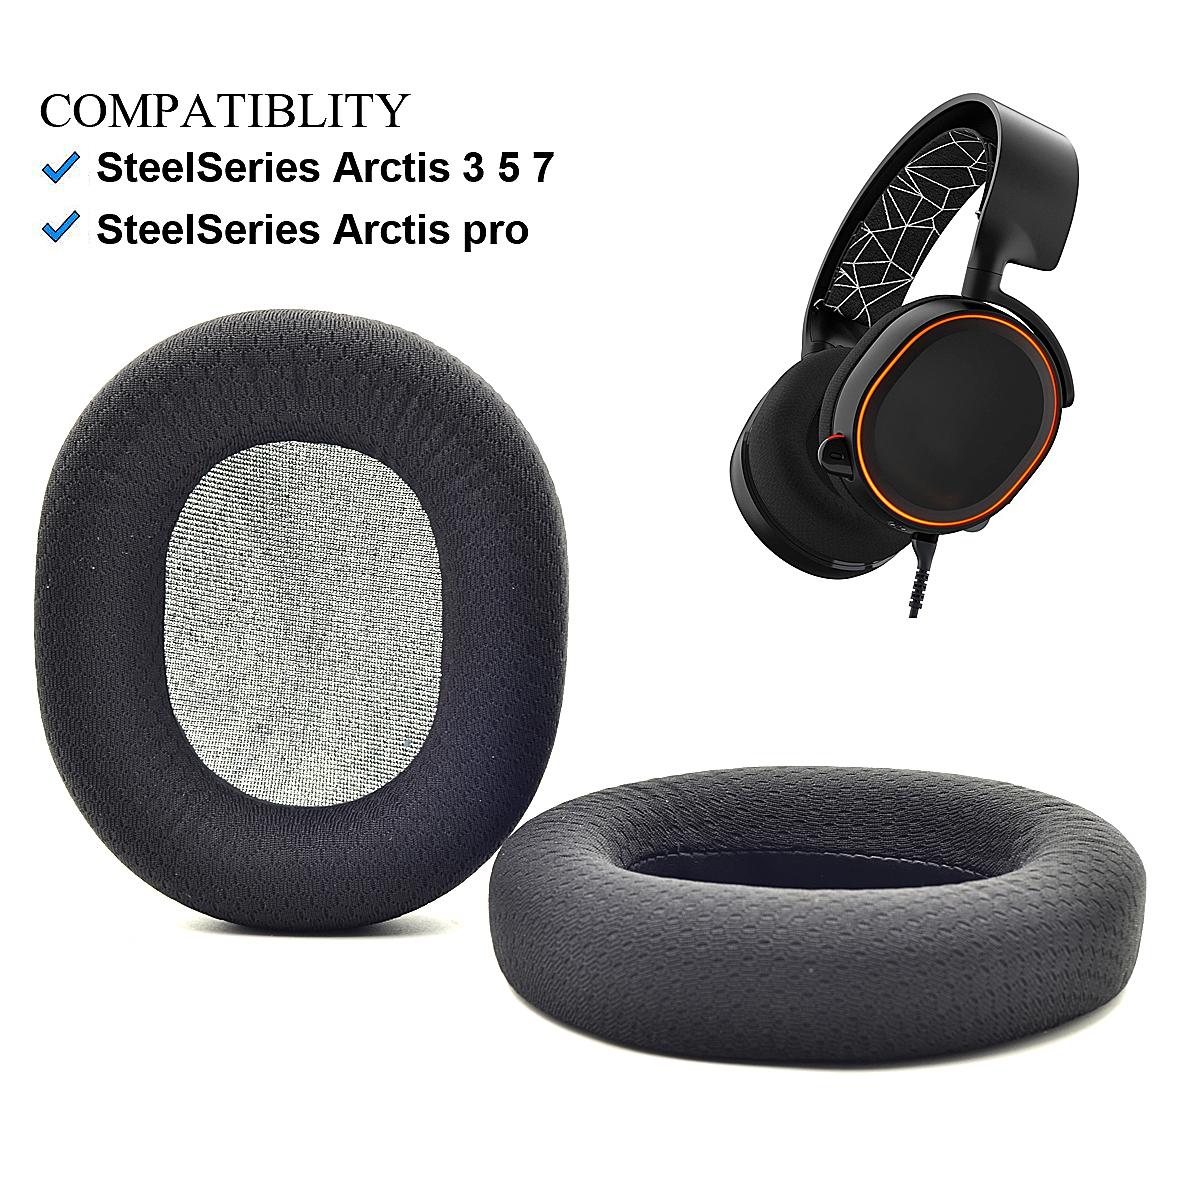 Details about Black fabric Ear pads cushion for SteelSeries Arctis 3 5 7 Arctis pro Headphone